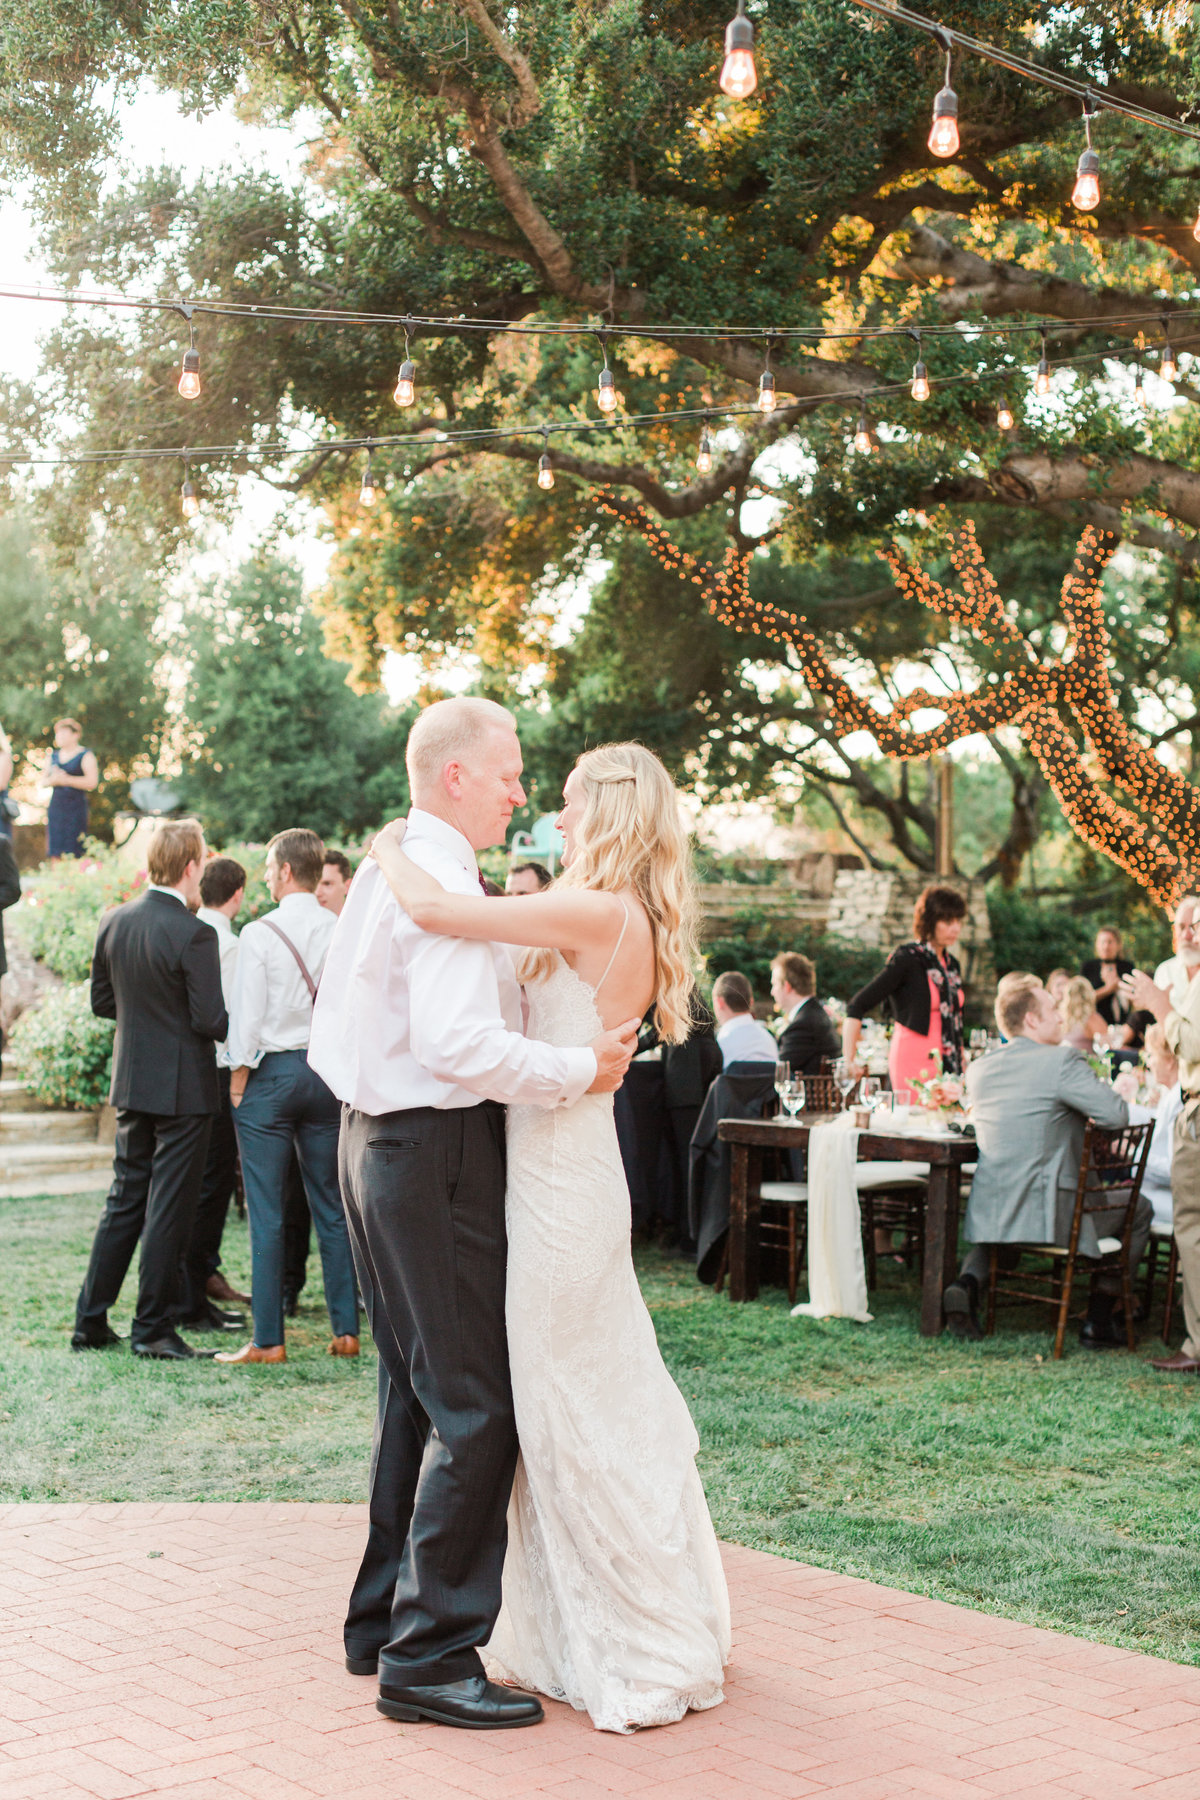 Quail_Ranch_Blush_California_Wedding_Valorie_Darling_Photography - 151 of 151